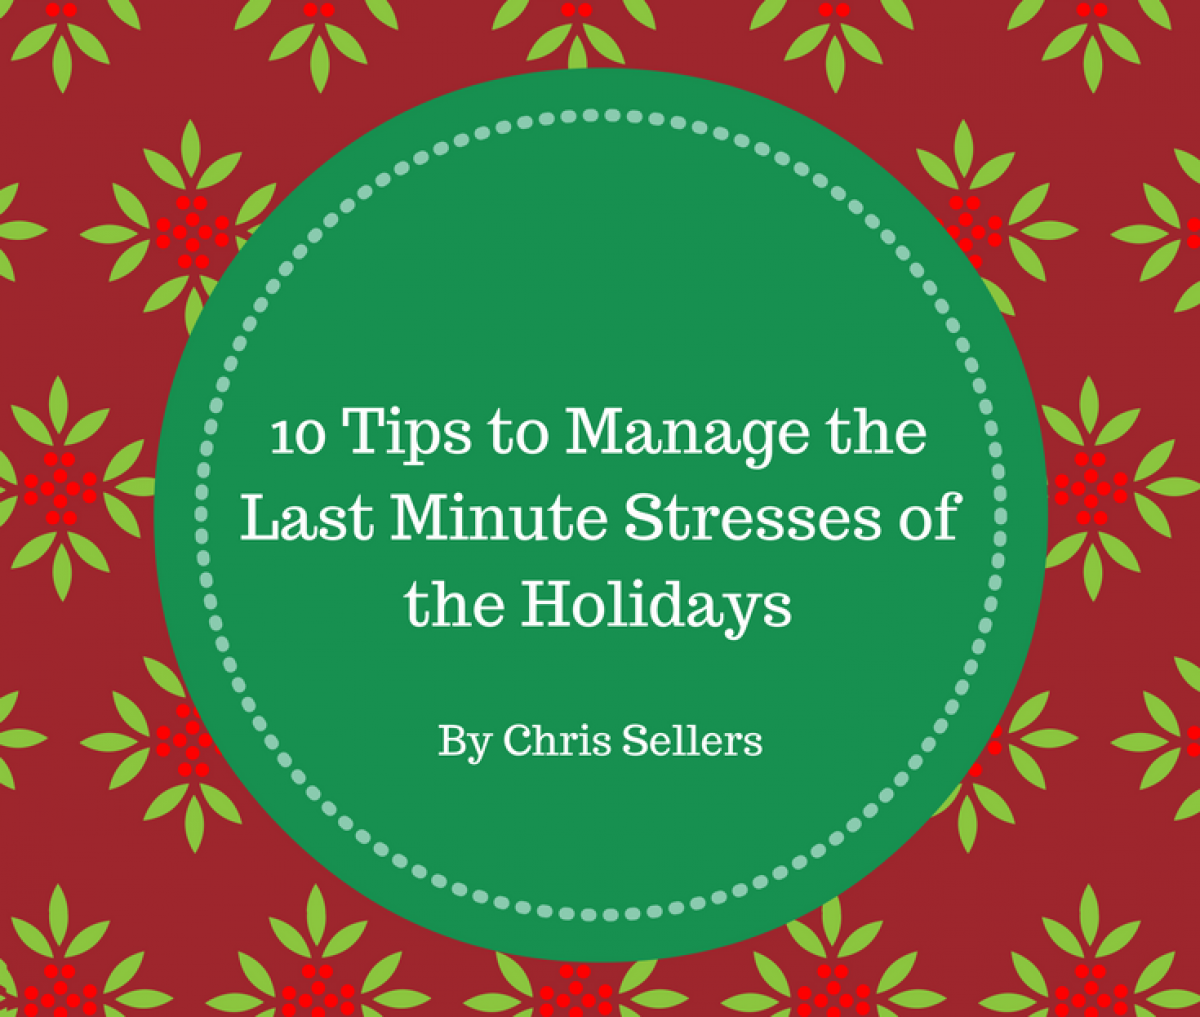 10 Tips To Manage The Last Minute Stresses Of The Holidays